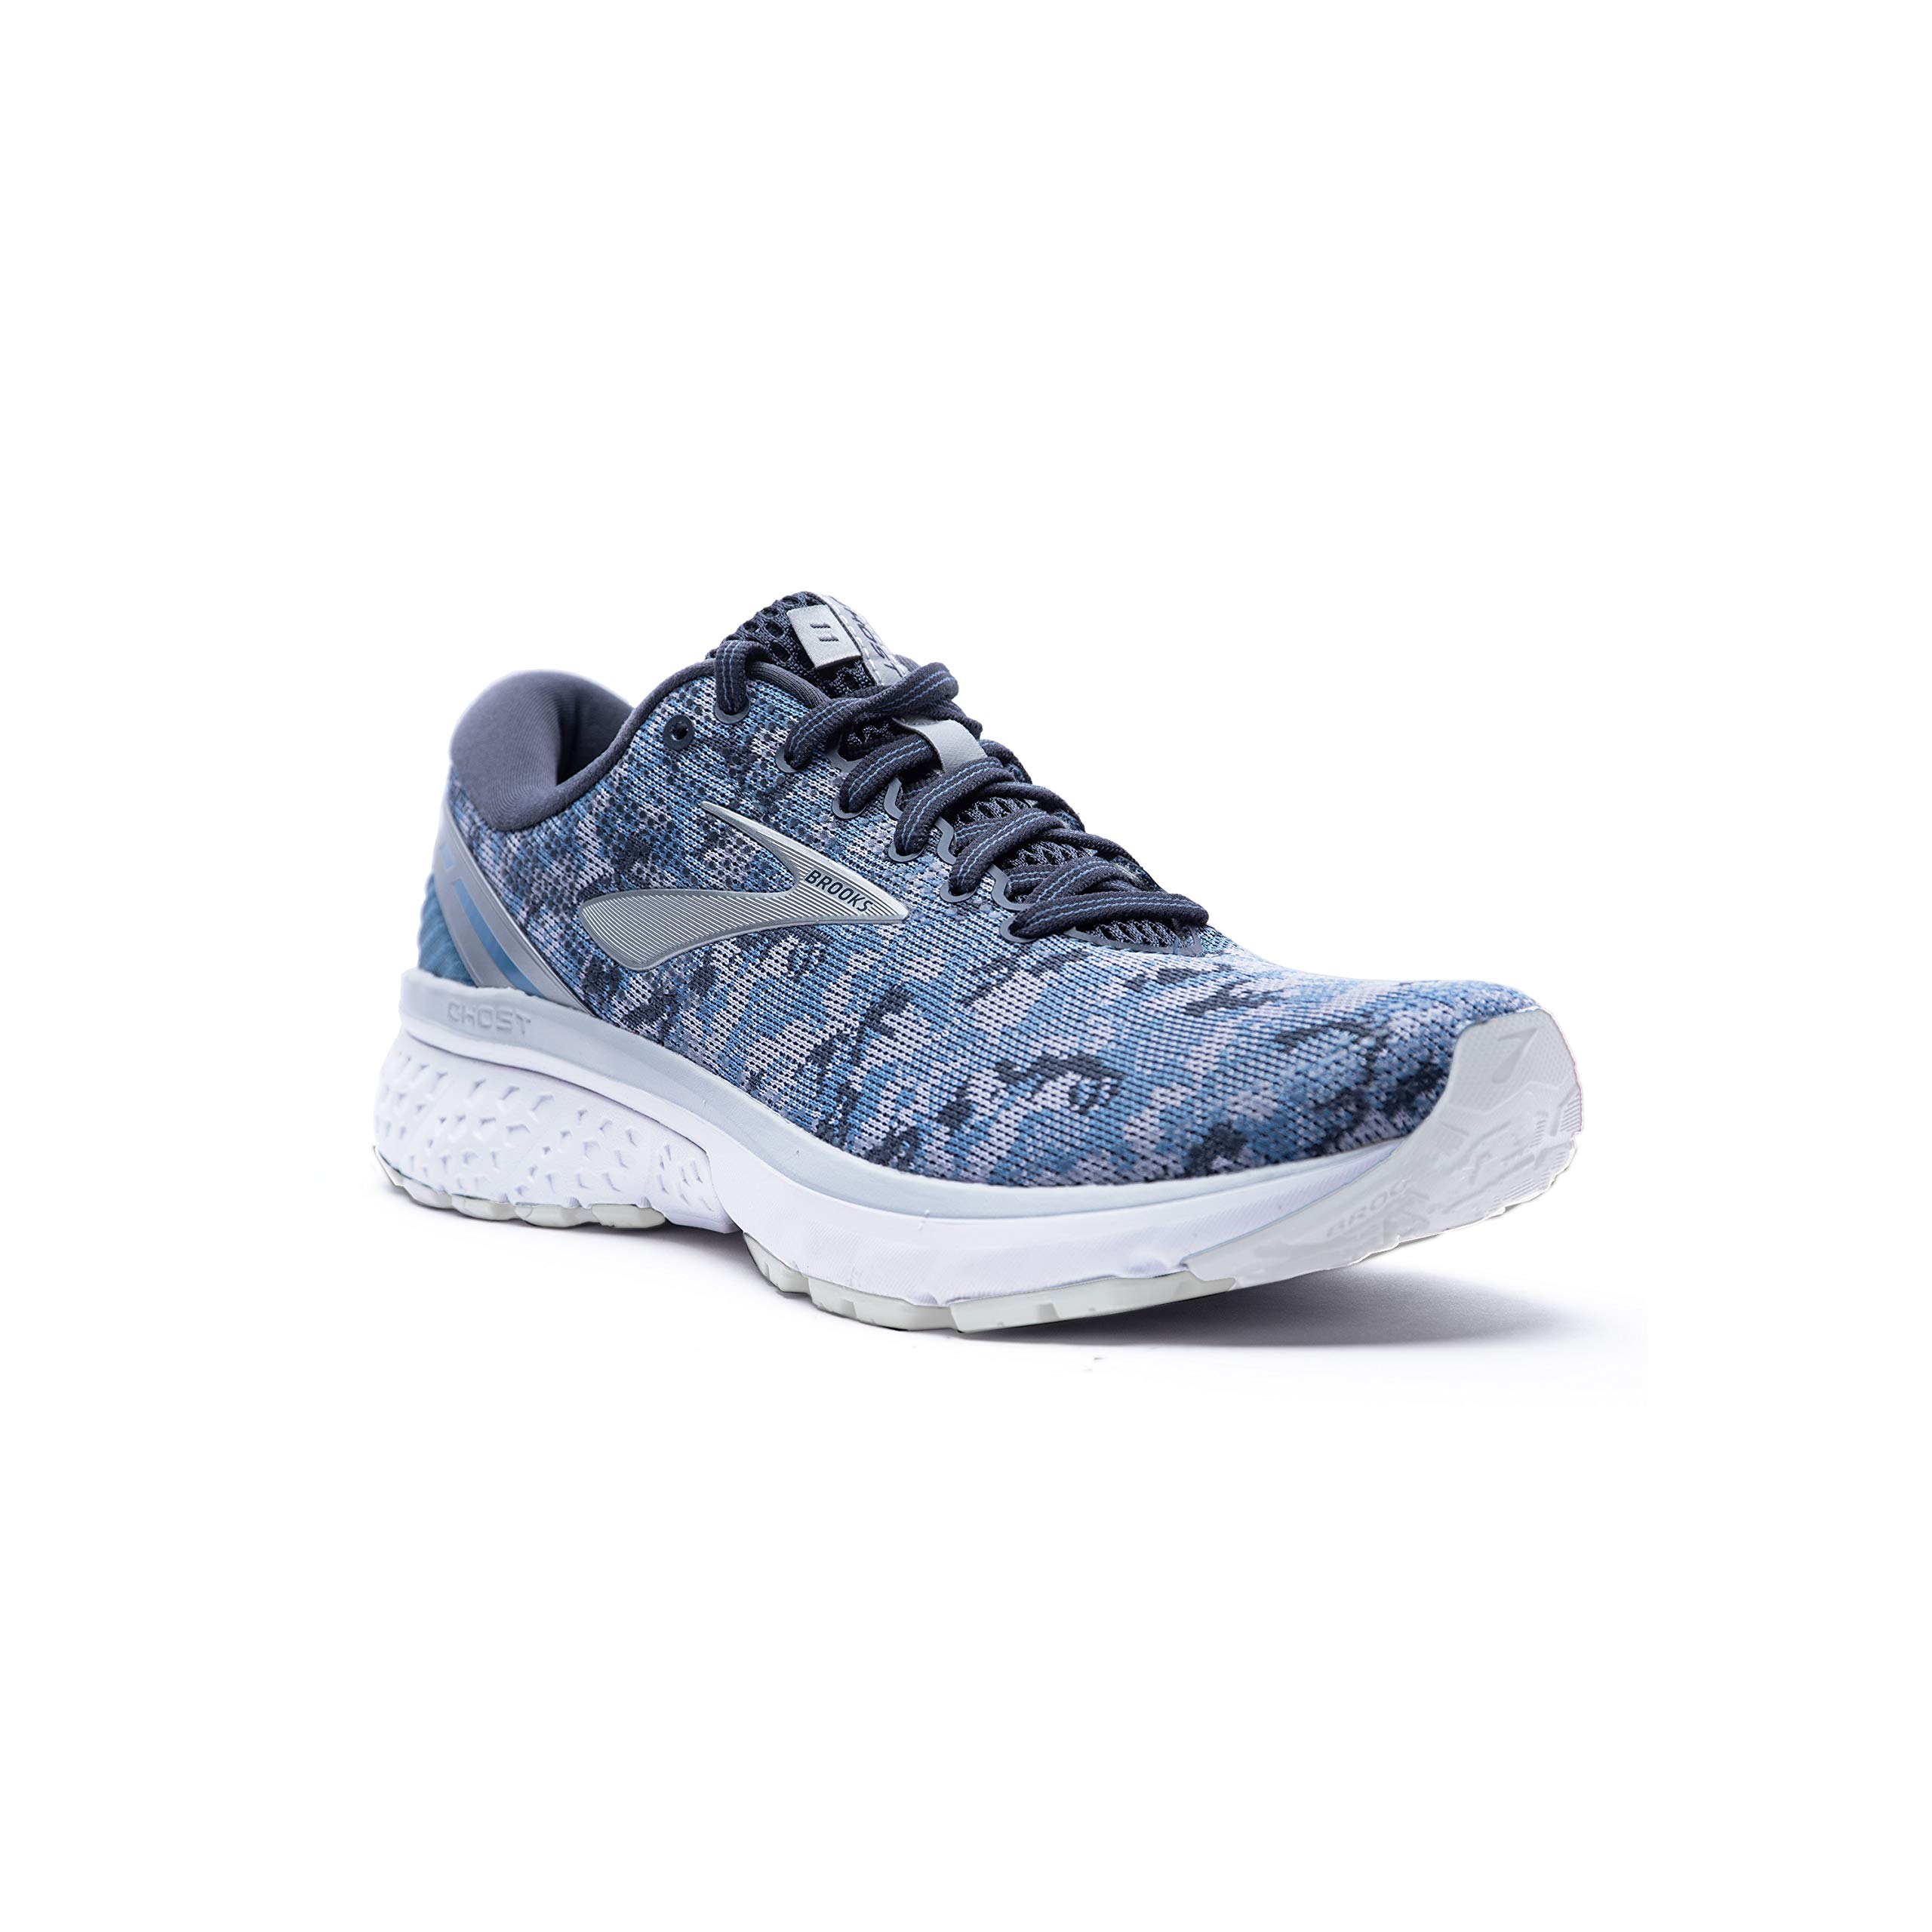 Brooks Womens Ghost 11 Running Shoe - Blue/Dark Grey/Oyster - B - 7.5 by Brooks